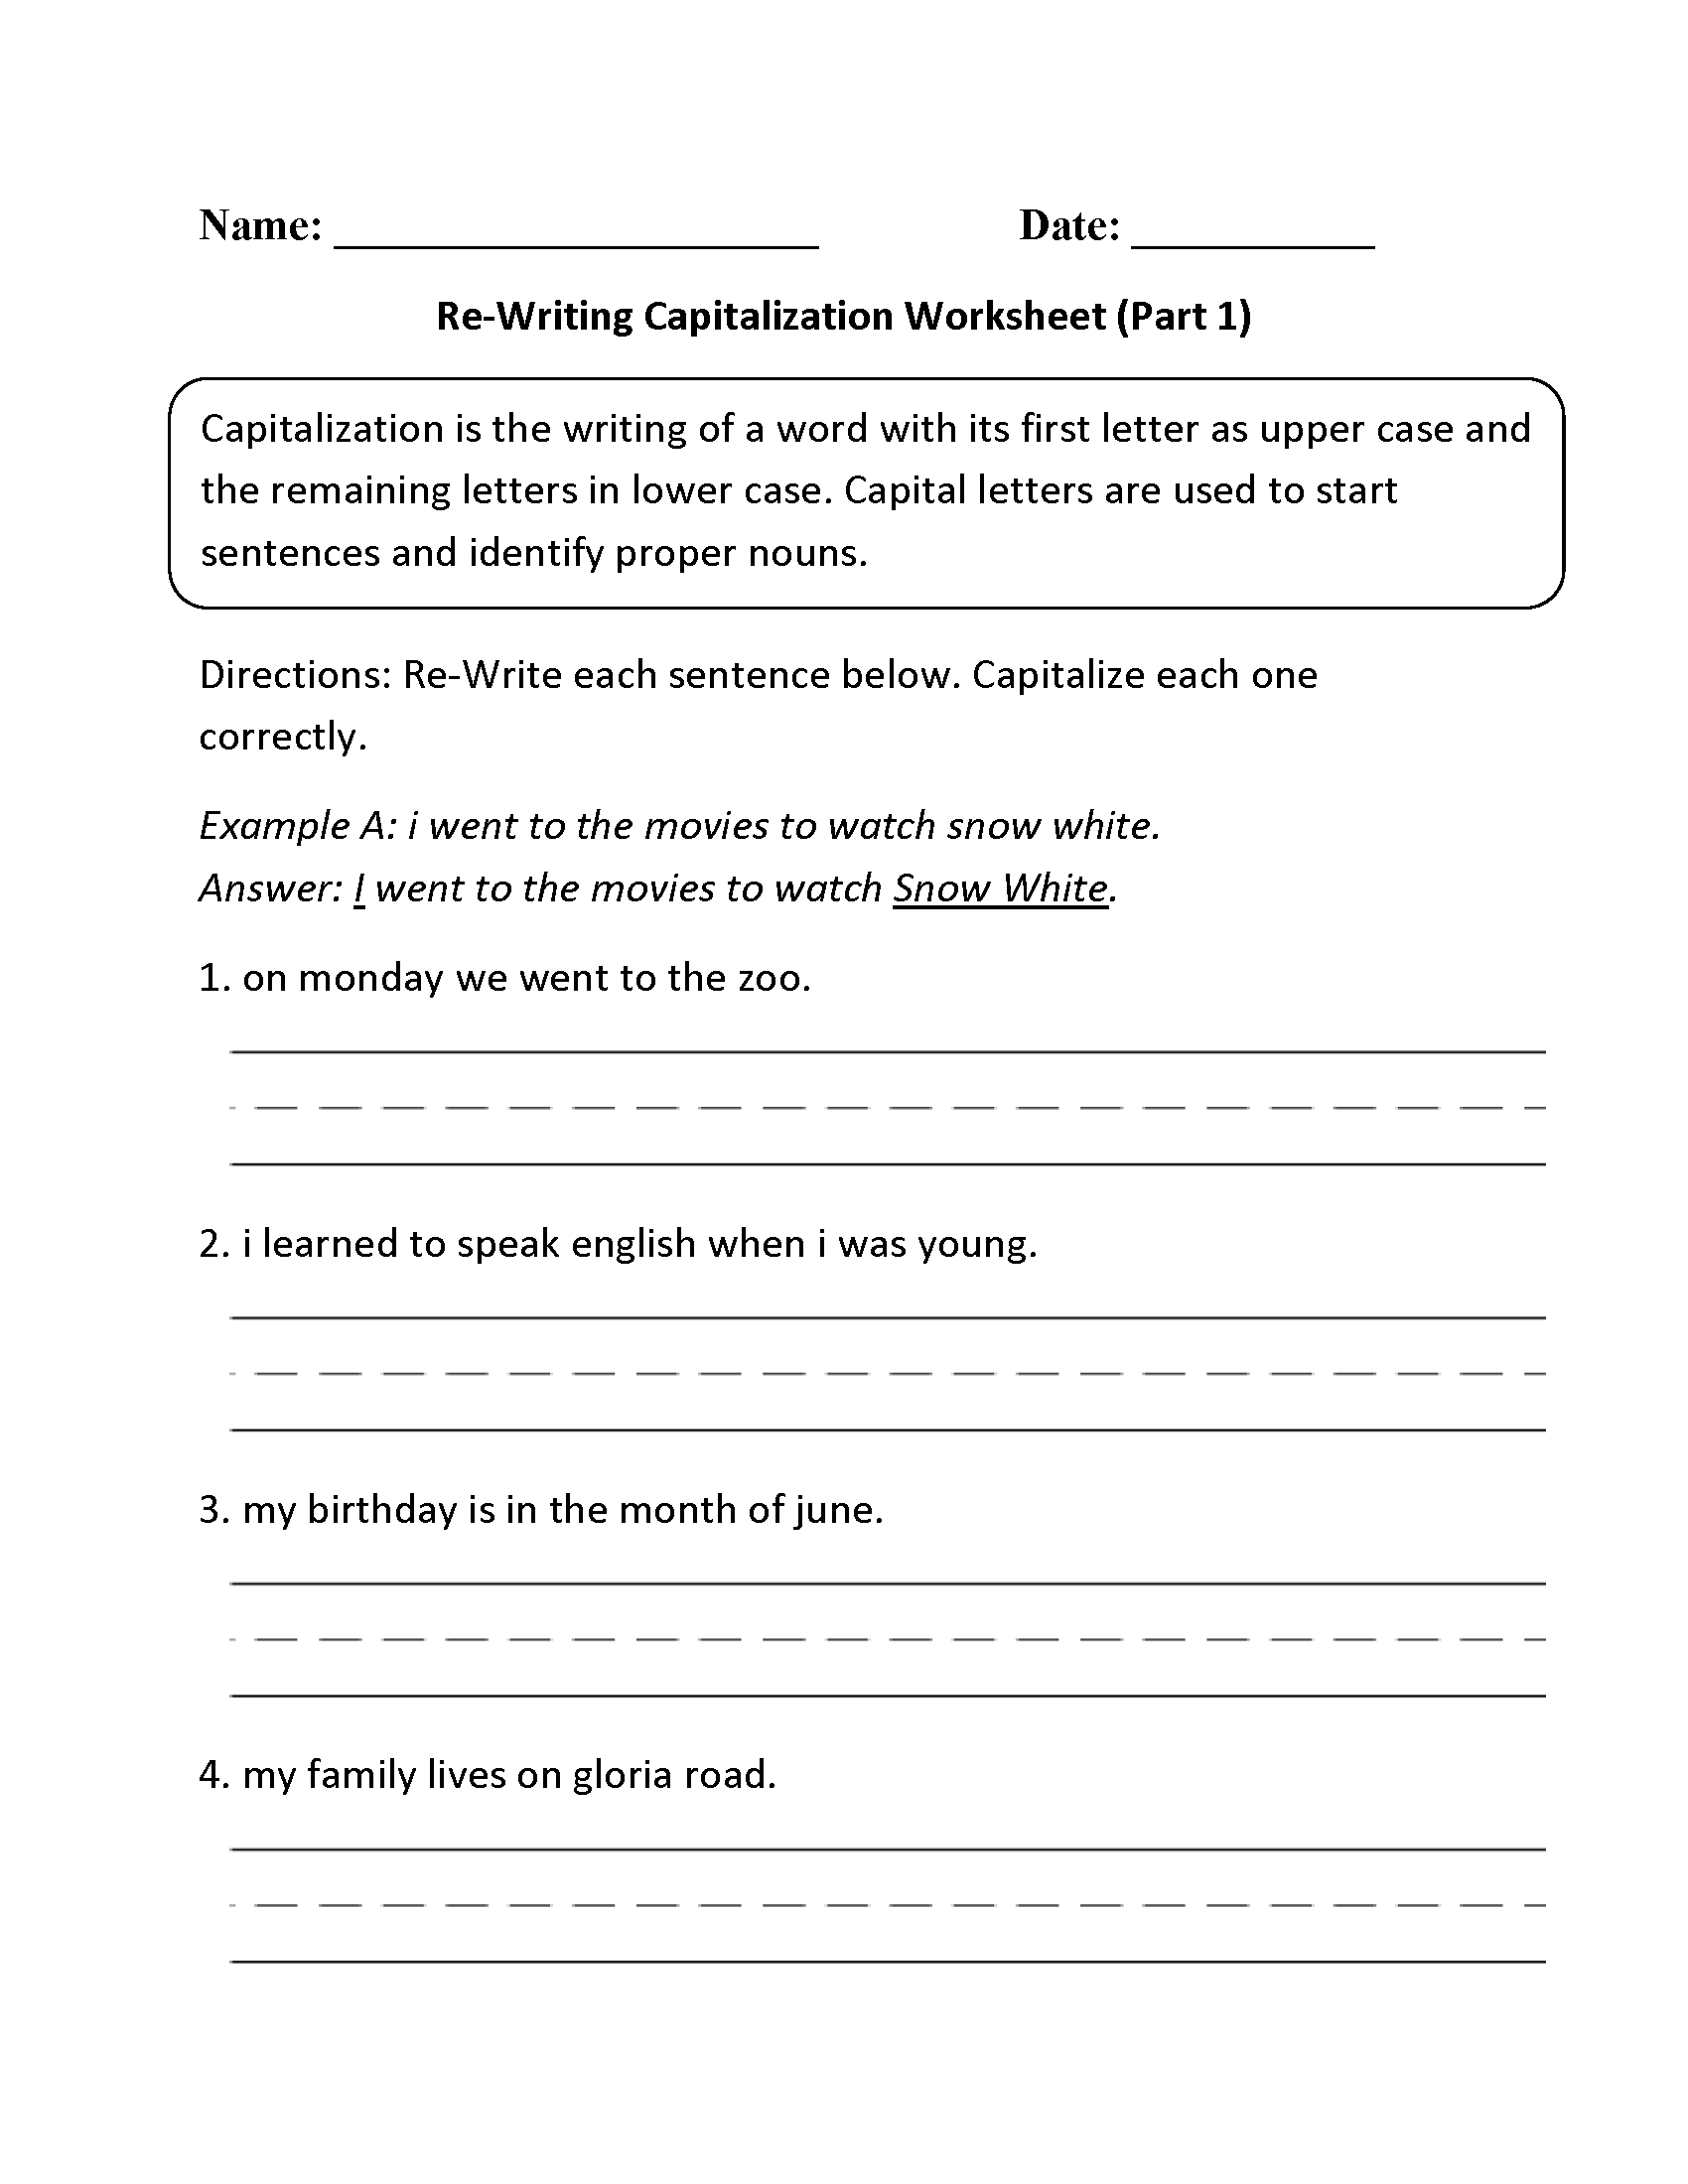 worksheet Punctuation And Capitalization Worksheets re writing capitalization worksheet part 1 1